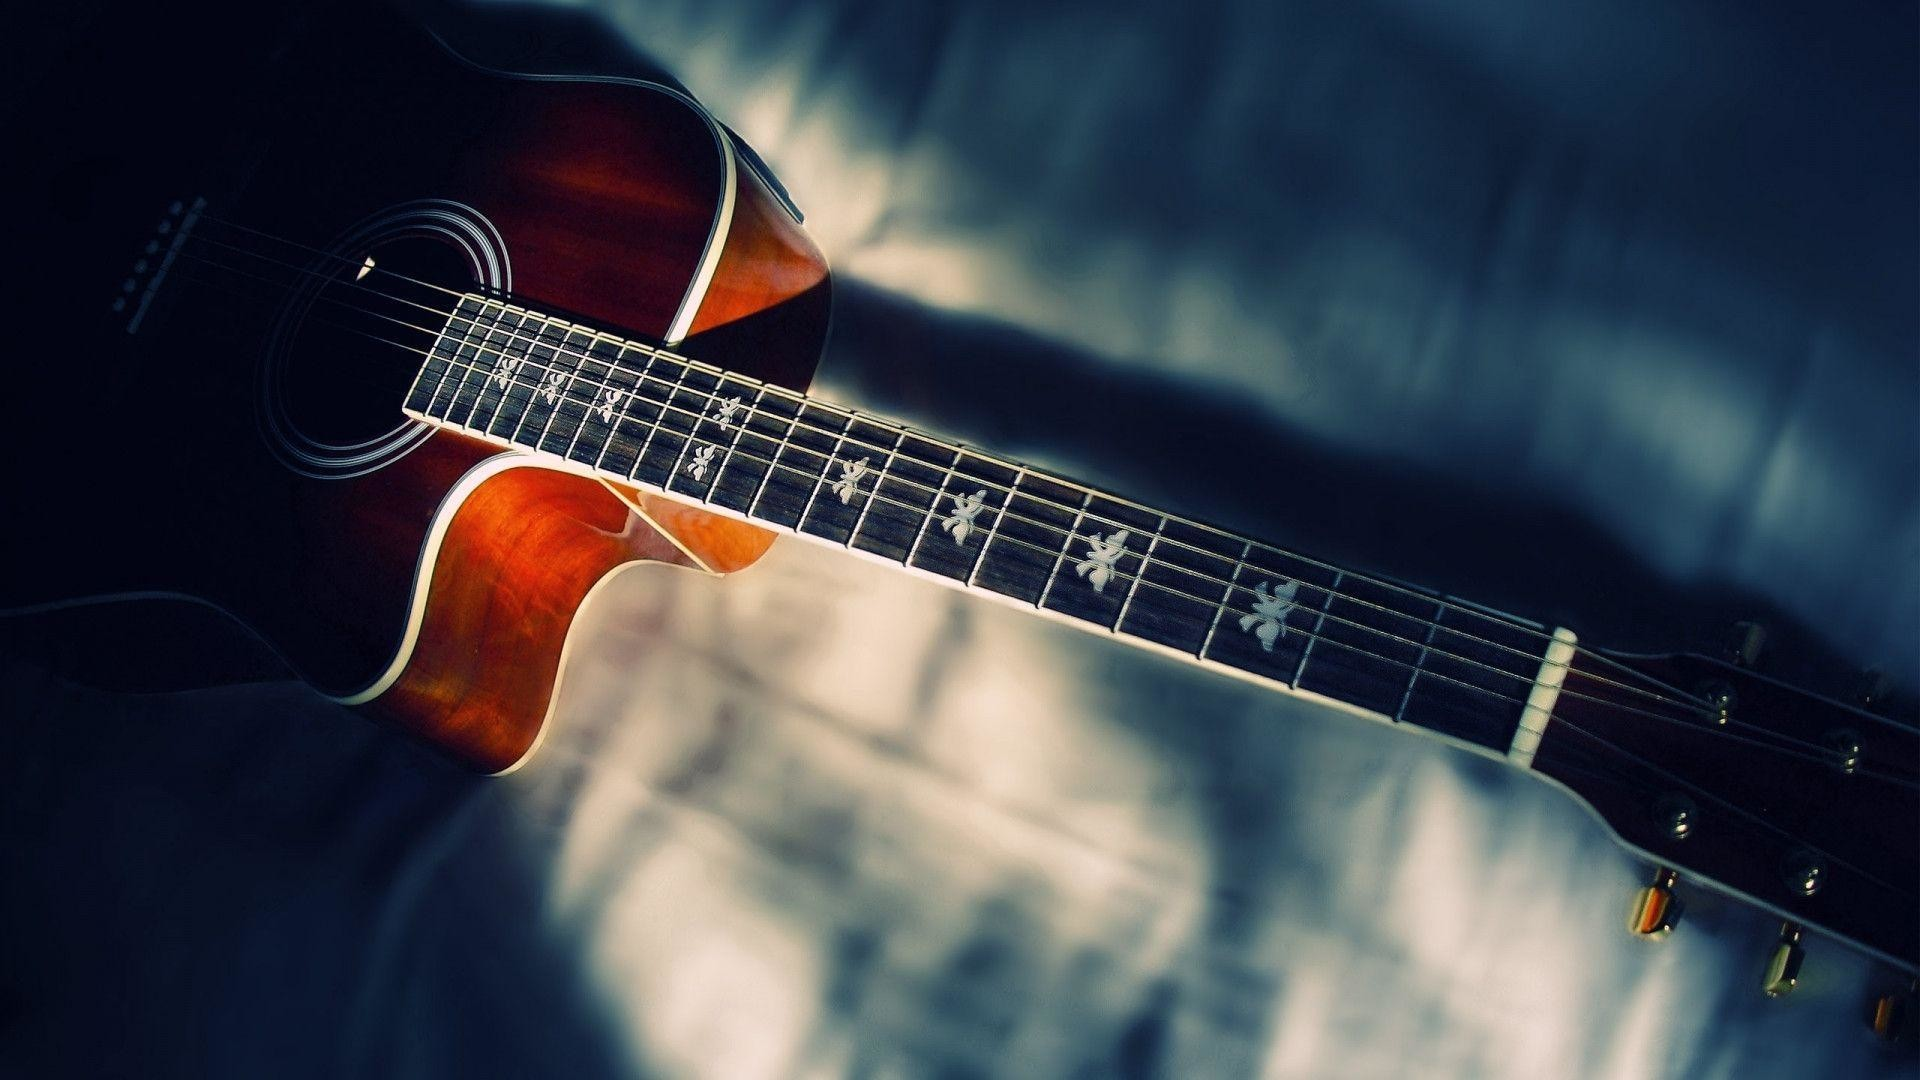 Guitar wallpapers 68 images 1920x1080 wallpapers for guitar wallpaper hd 1080p voltagebd Choice Image